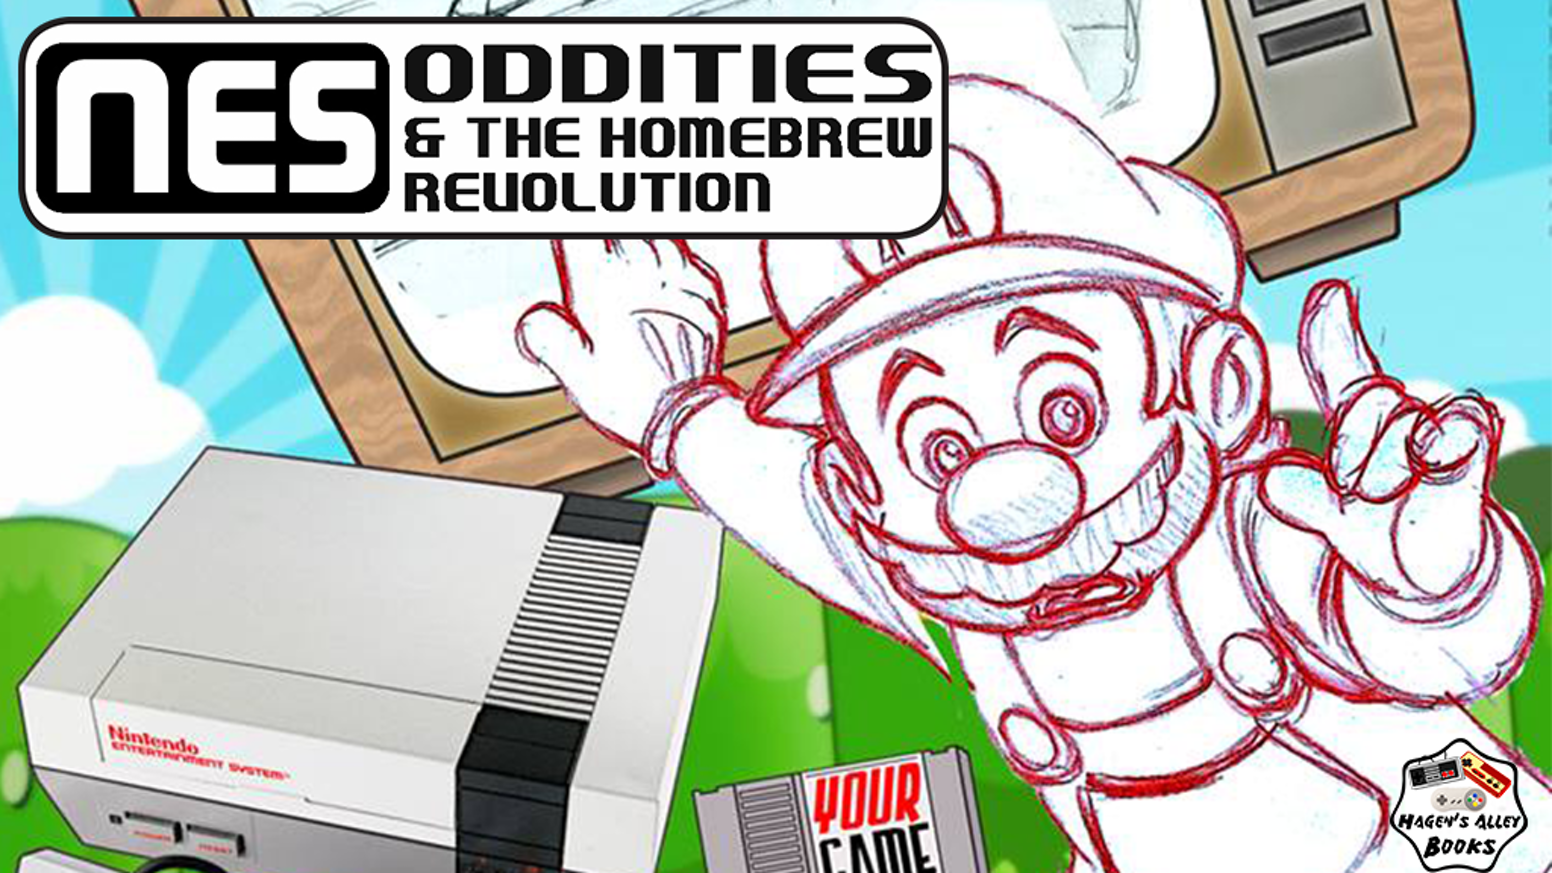 NES Oddities & the Homebrew Revolution and the Nintendo Compendium are brand new books based on the 8-bit Nintendo Entertainment System!